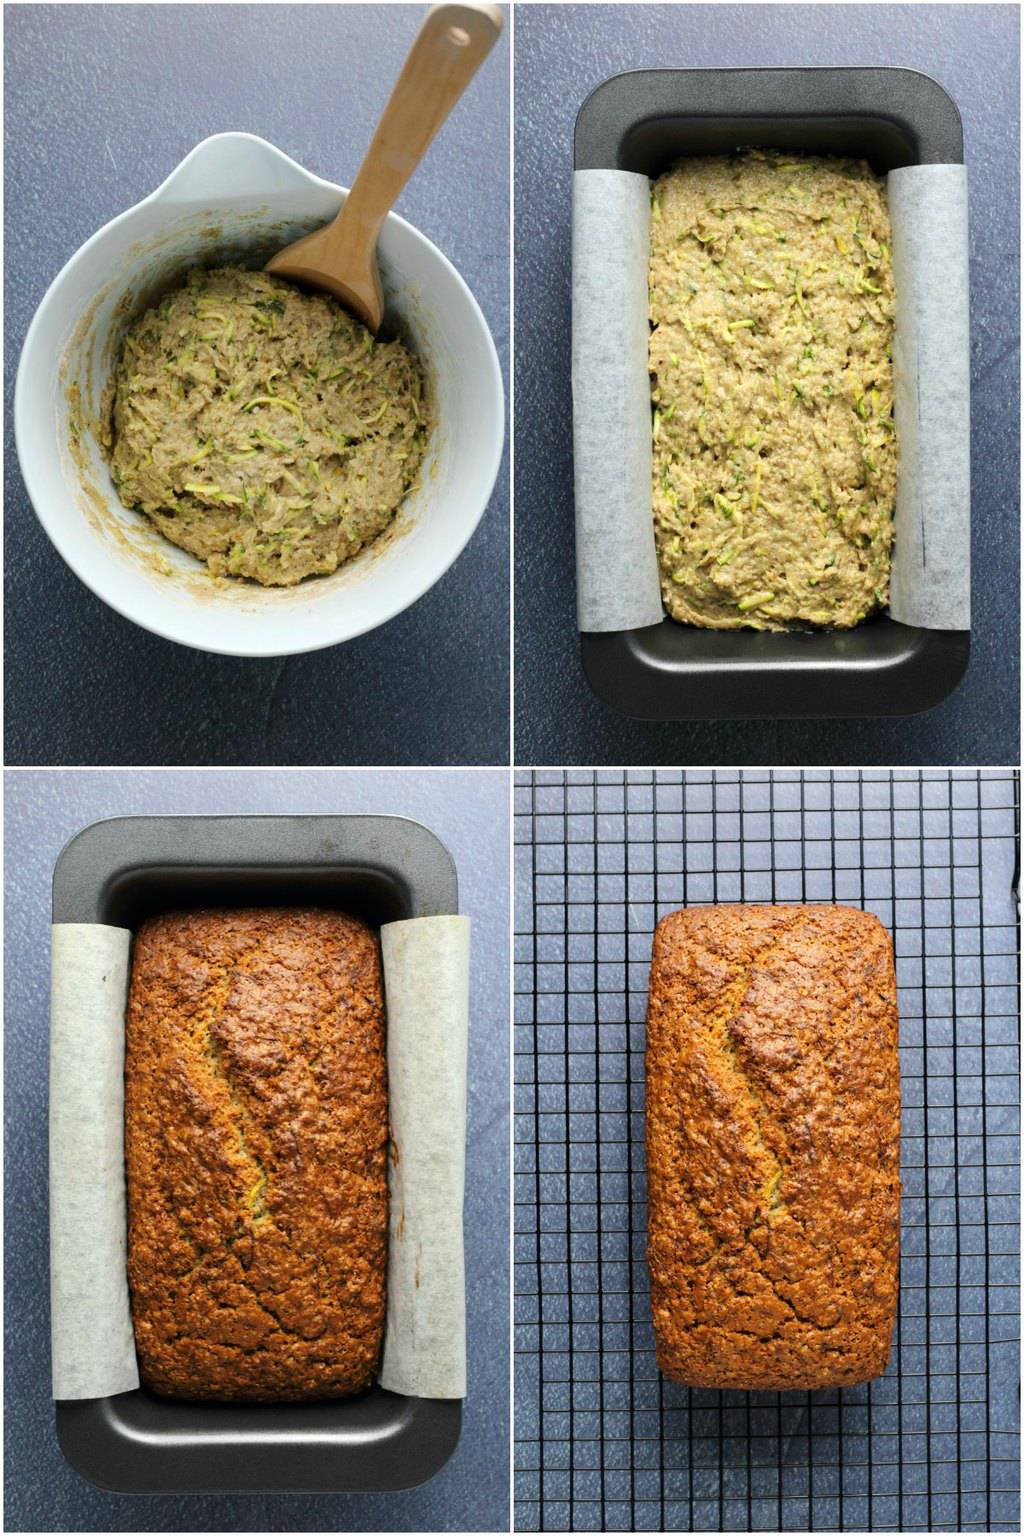 Step by step process photos of making vegan zucchini bread